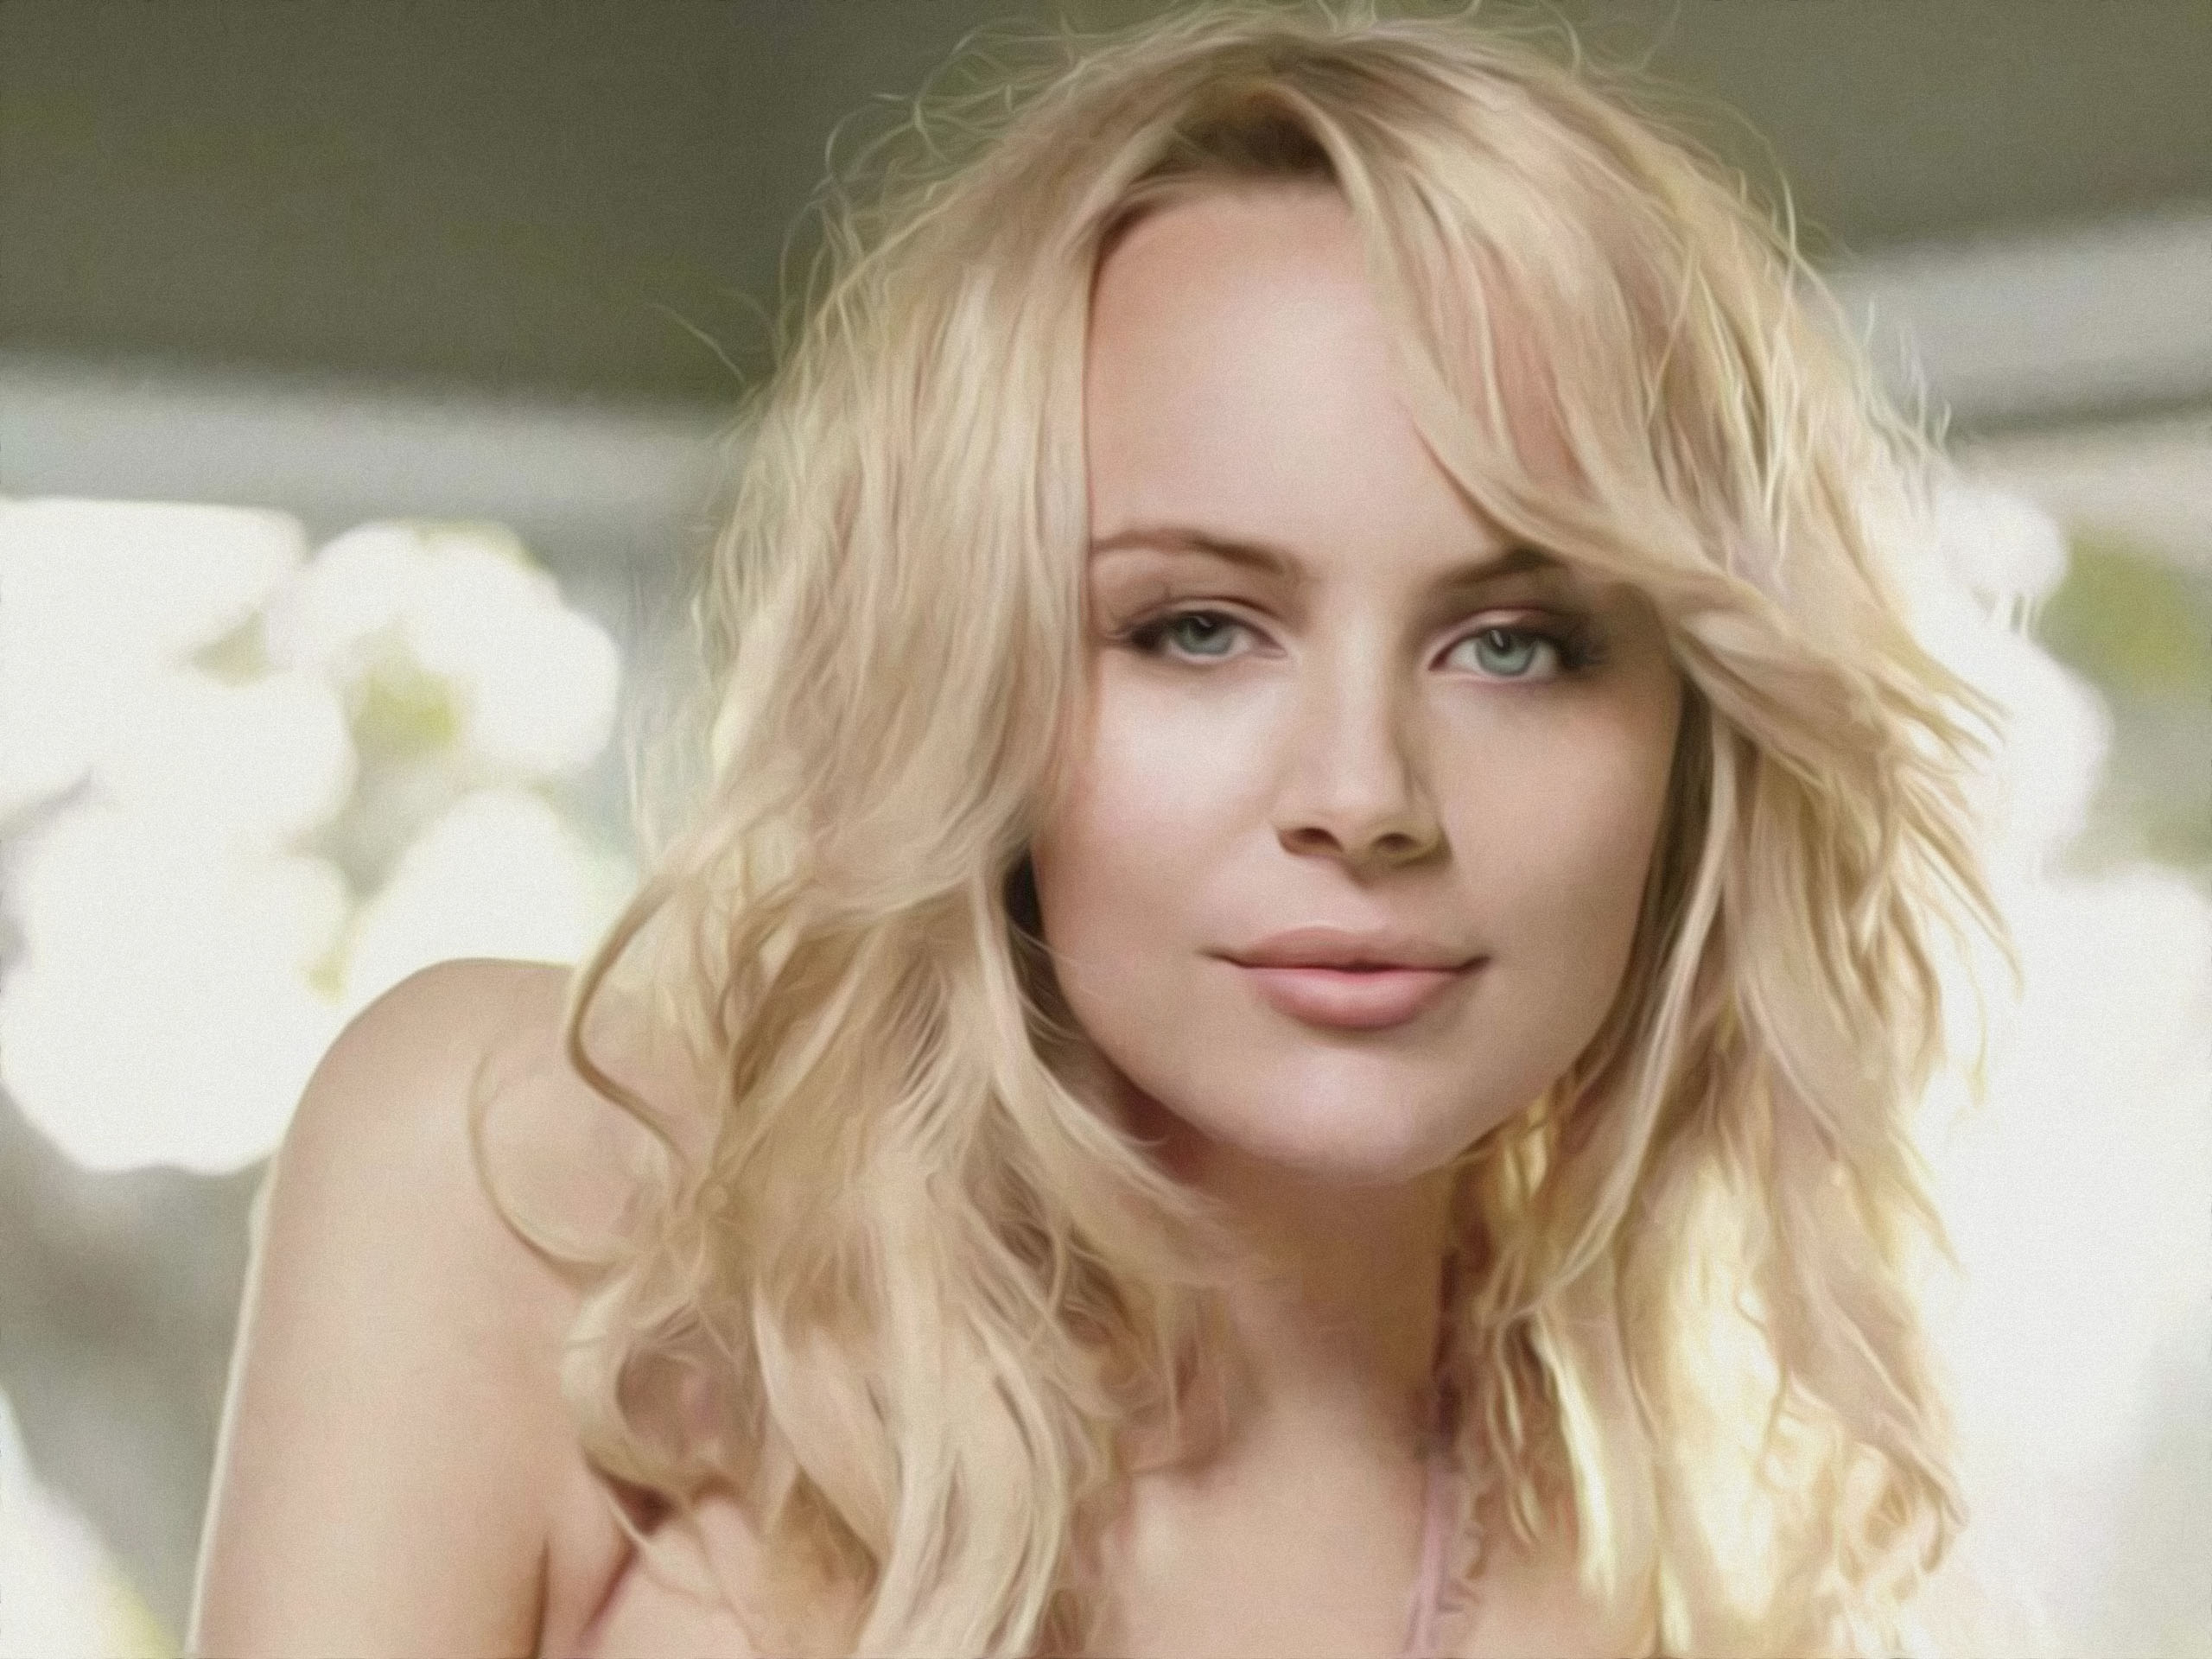 Helena mattsson species - 1 part 1